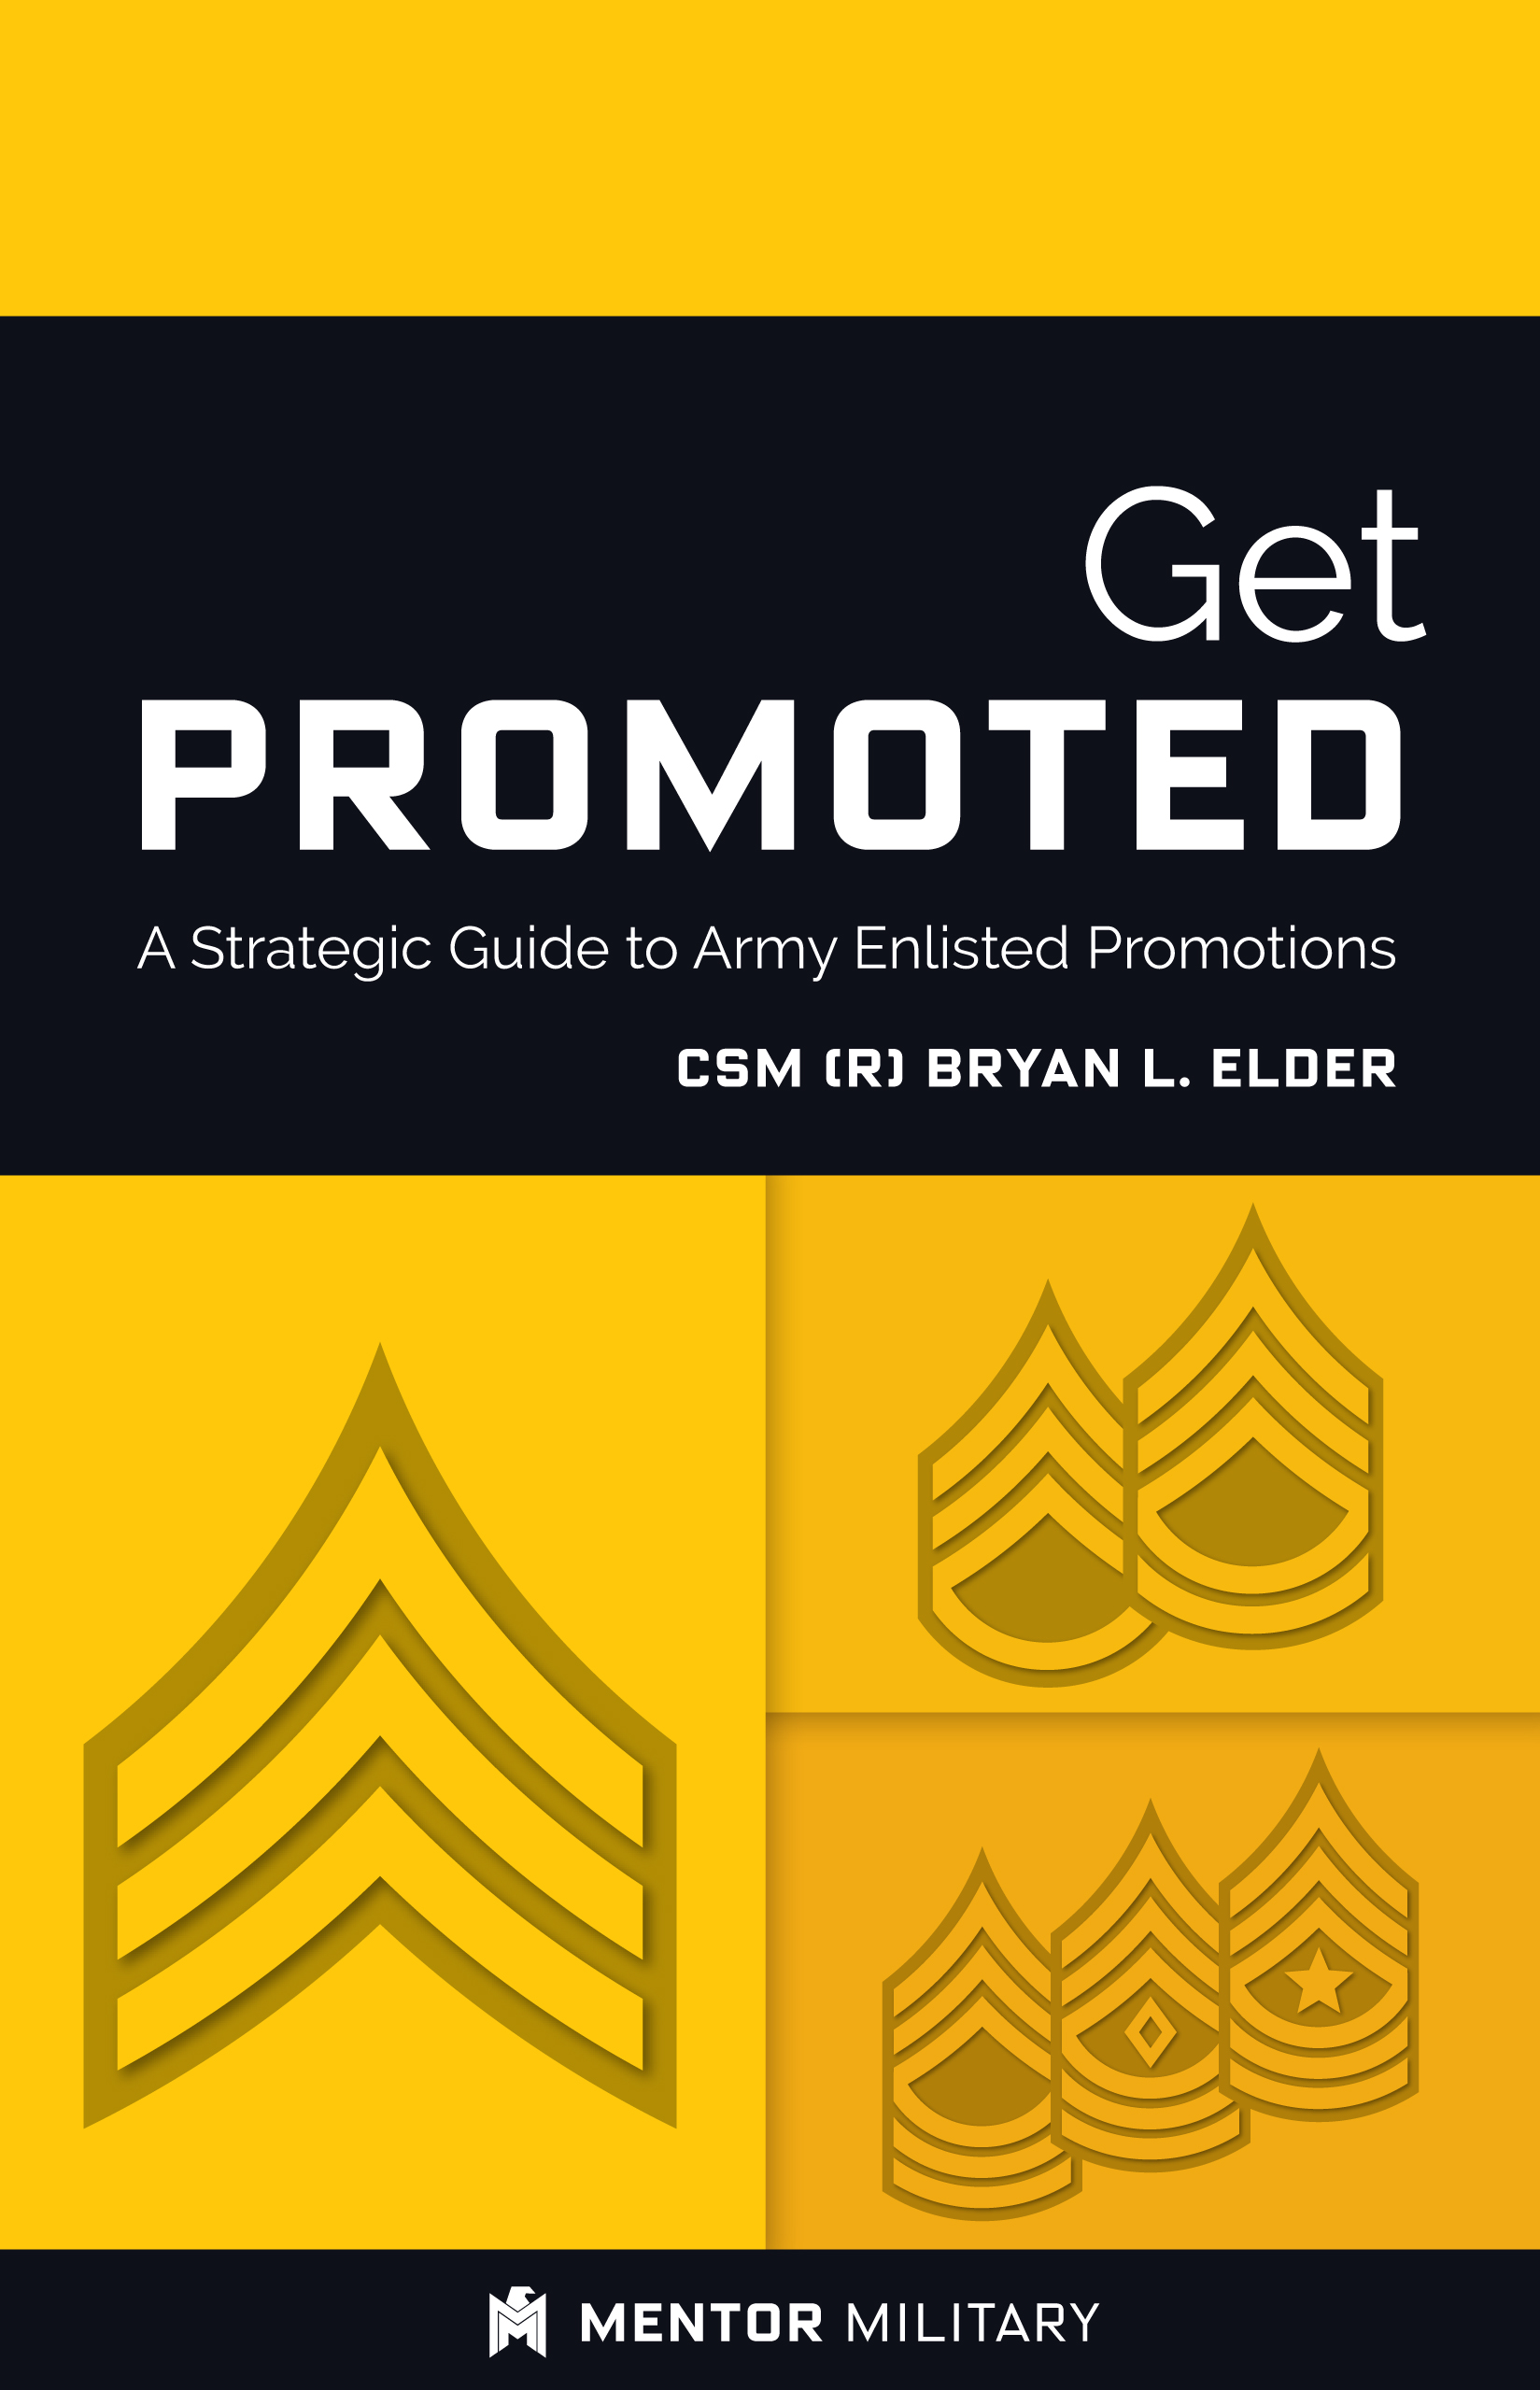 Get Promoted: A Strategic Guide to Army Enlisted Promotions